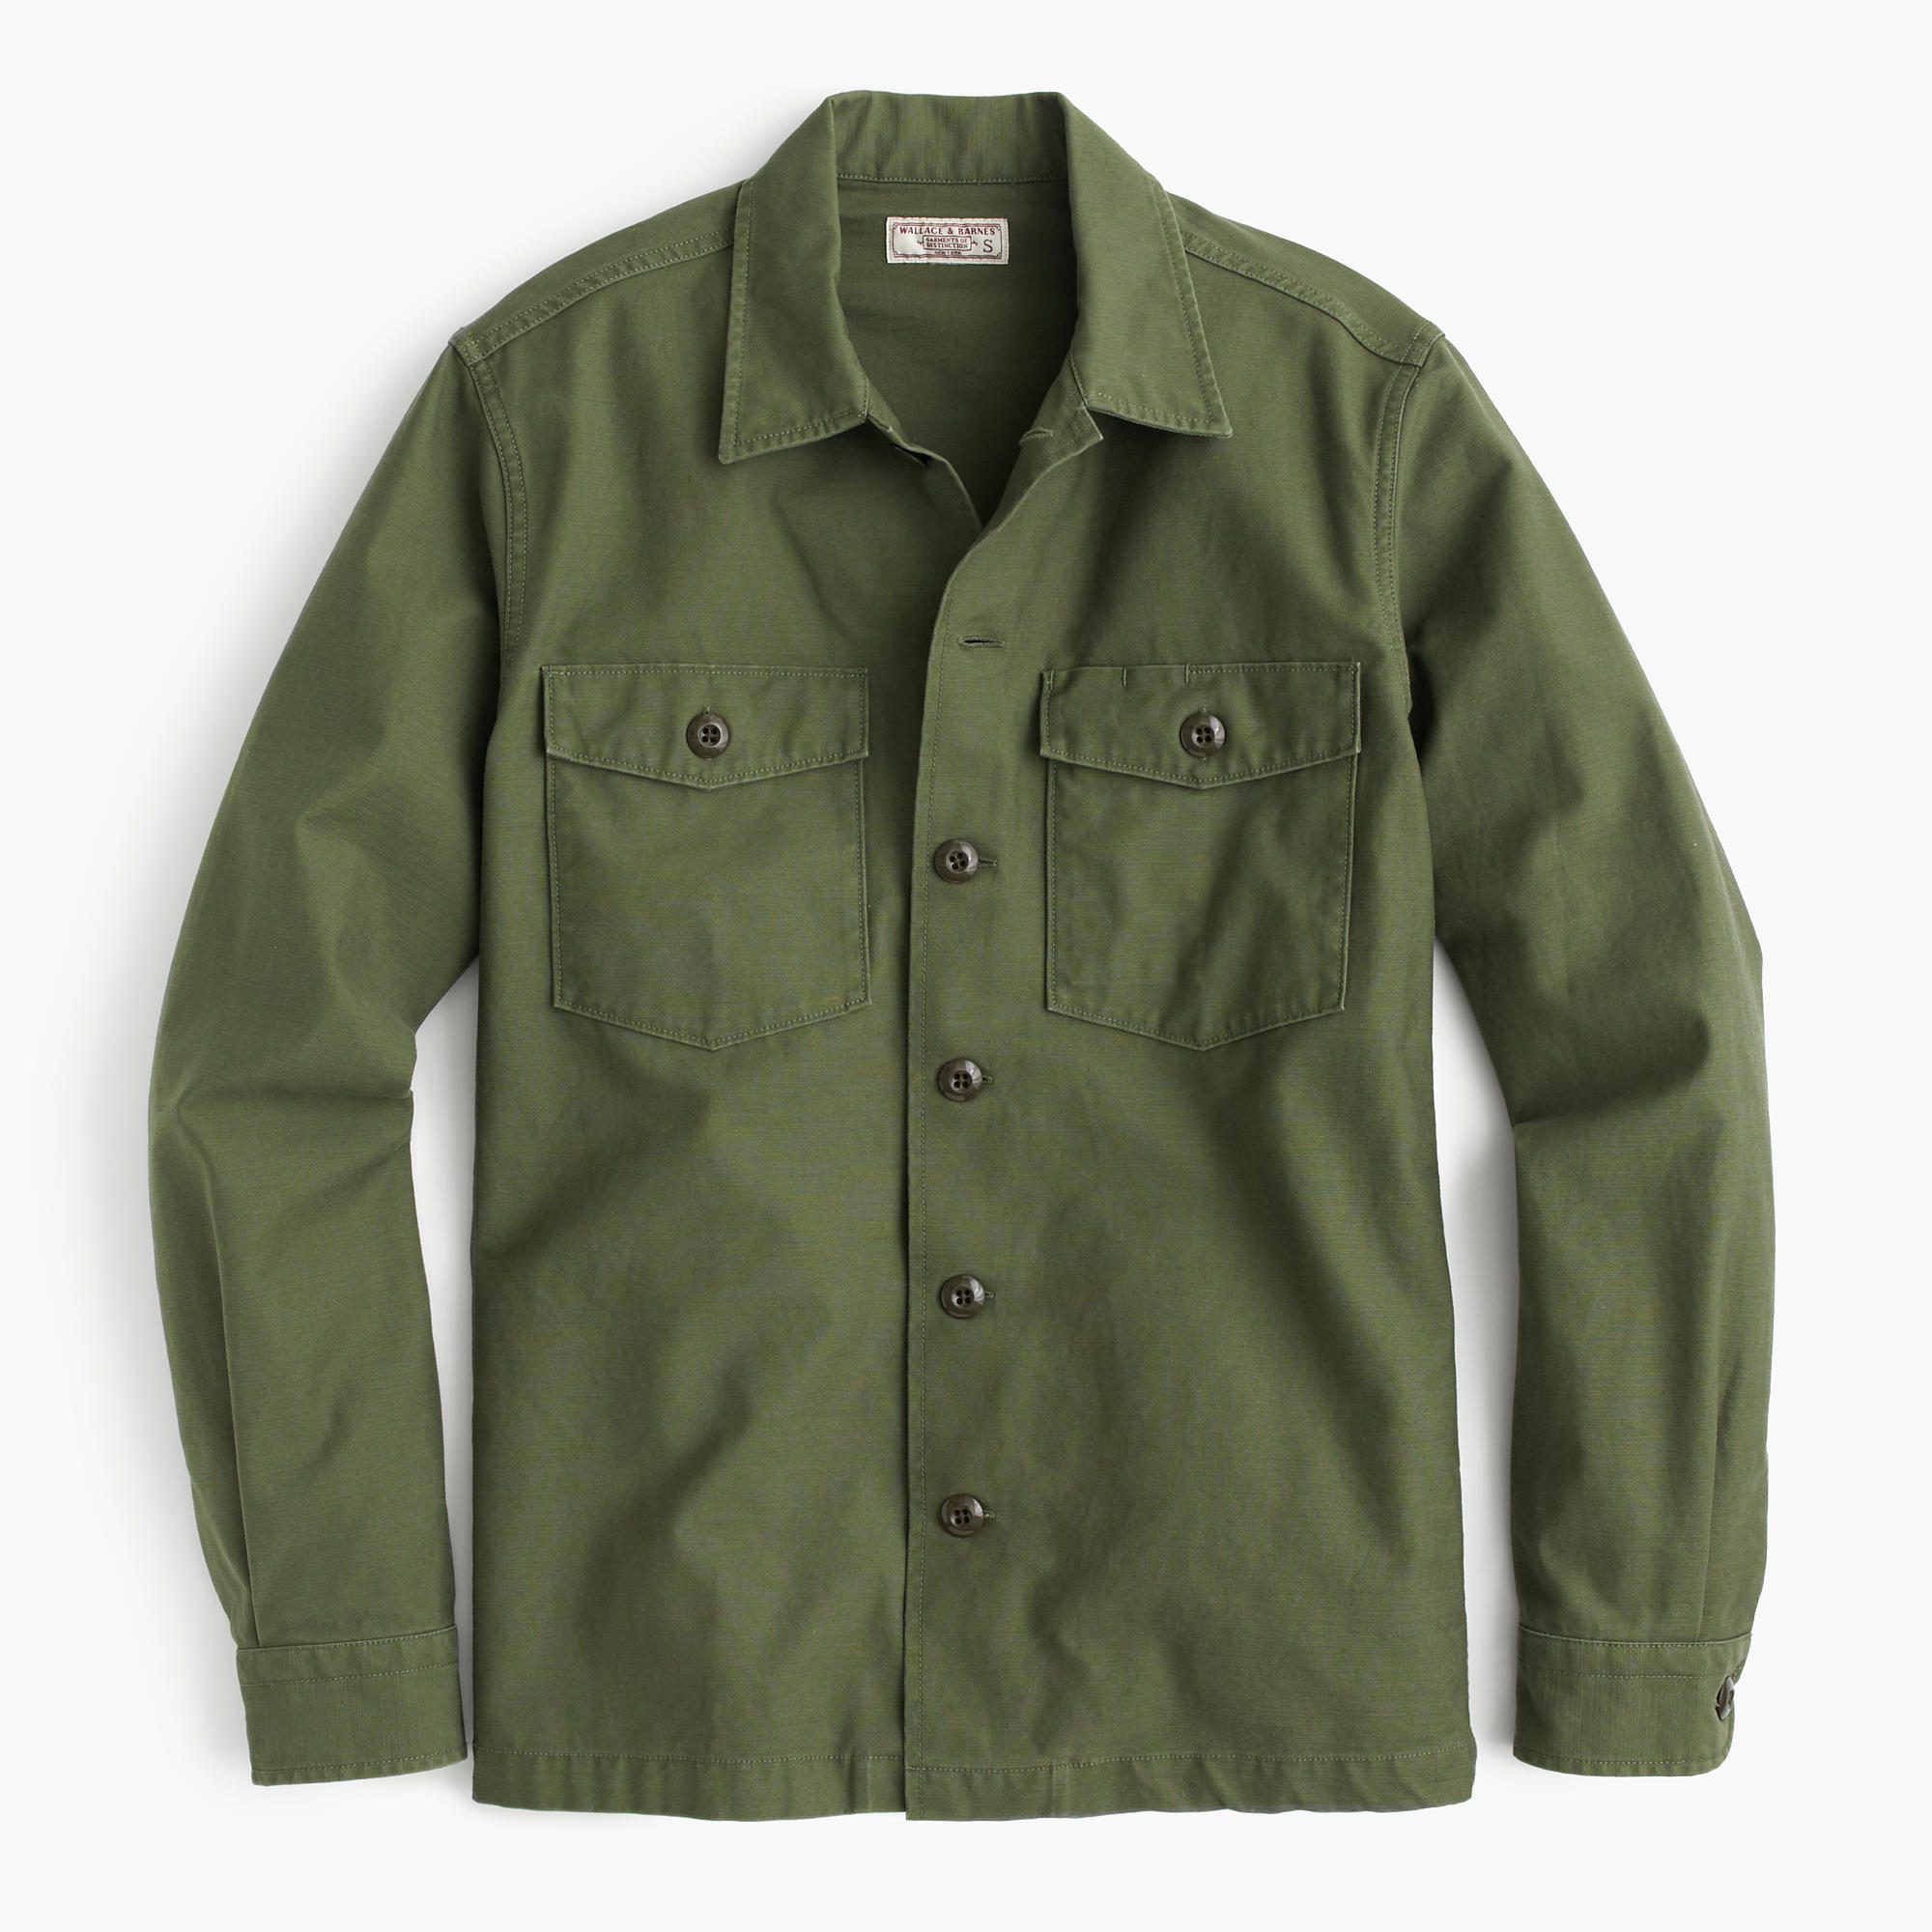 Wallace & Barnes Military Shirt-Jacket : Men's Shirts | J.Crew